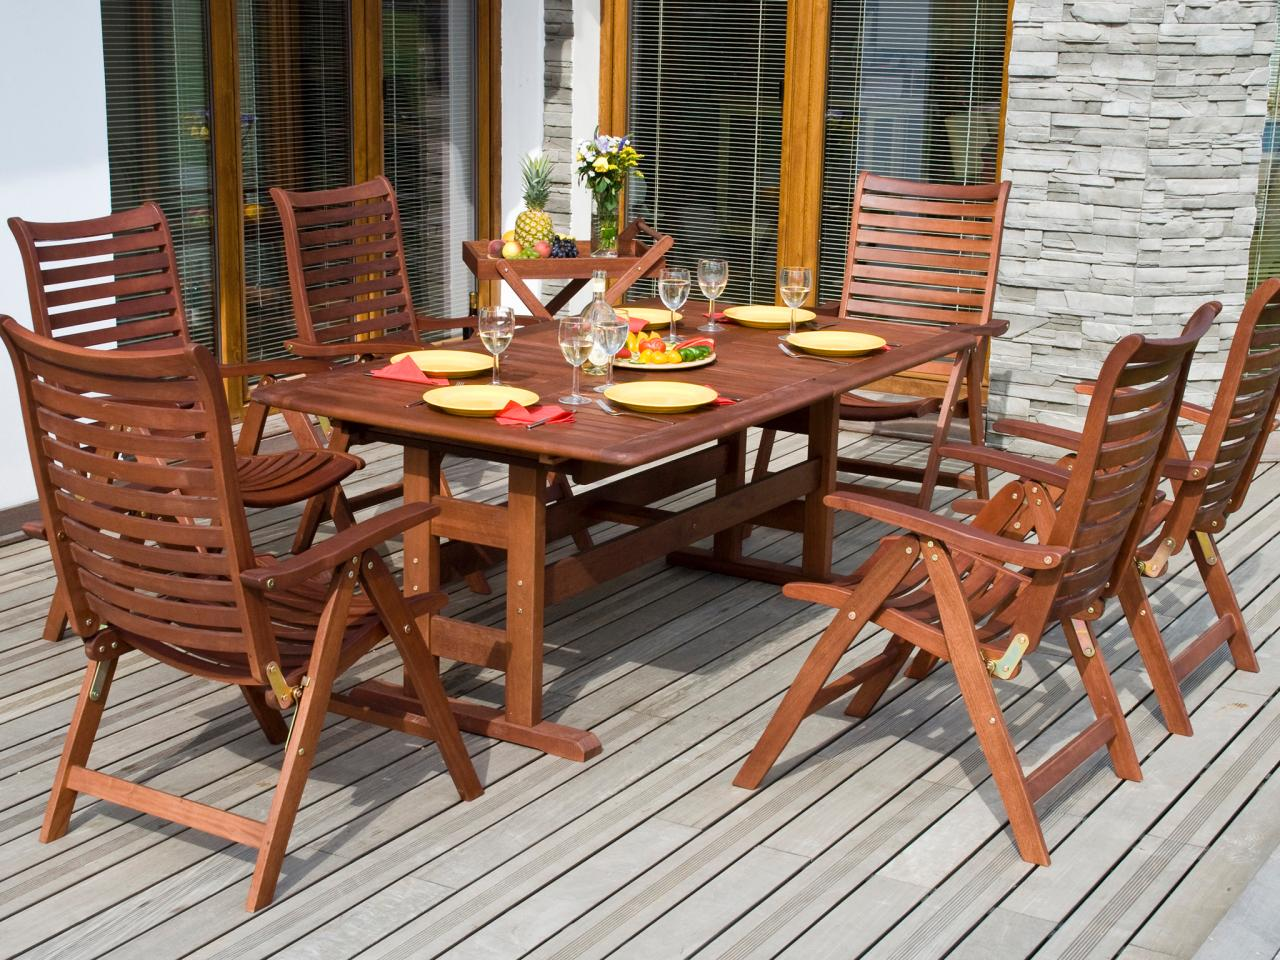 Garden Furniture Uses Garden Furniture In Uk